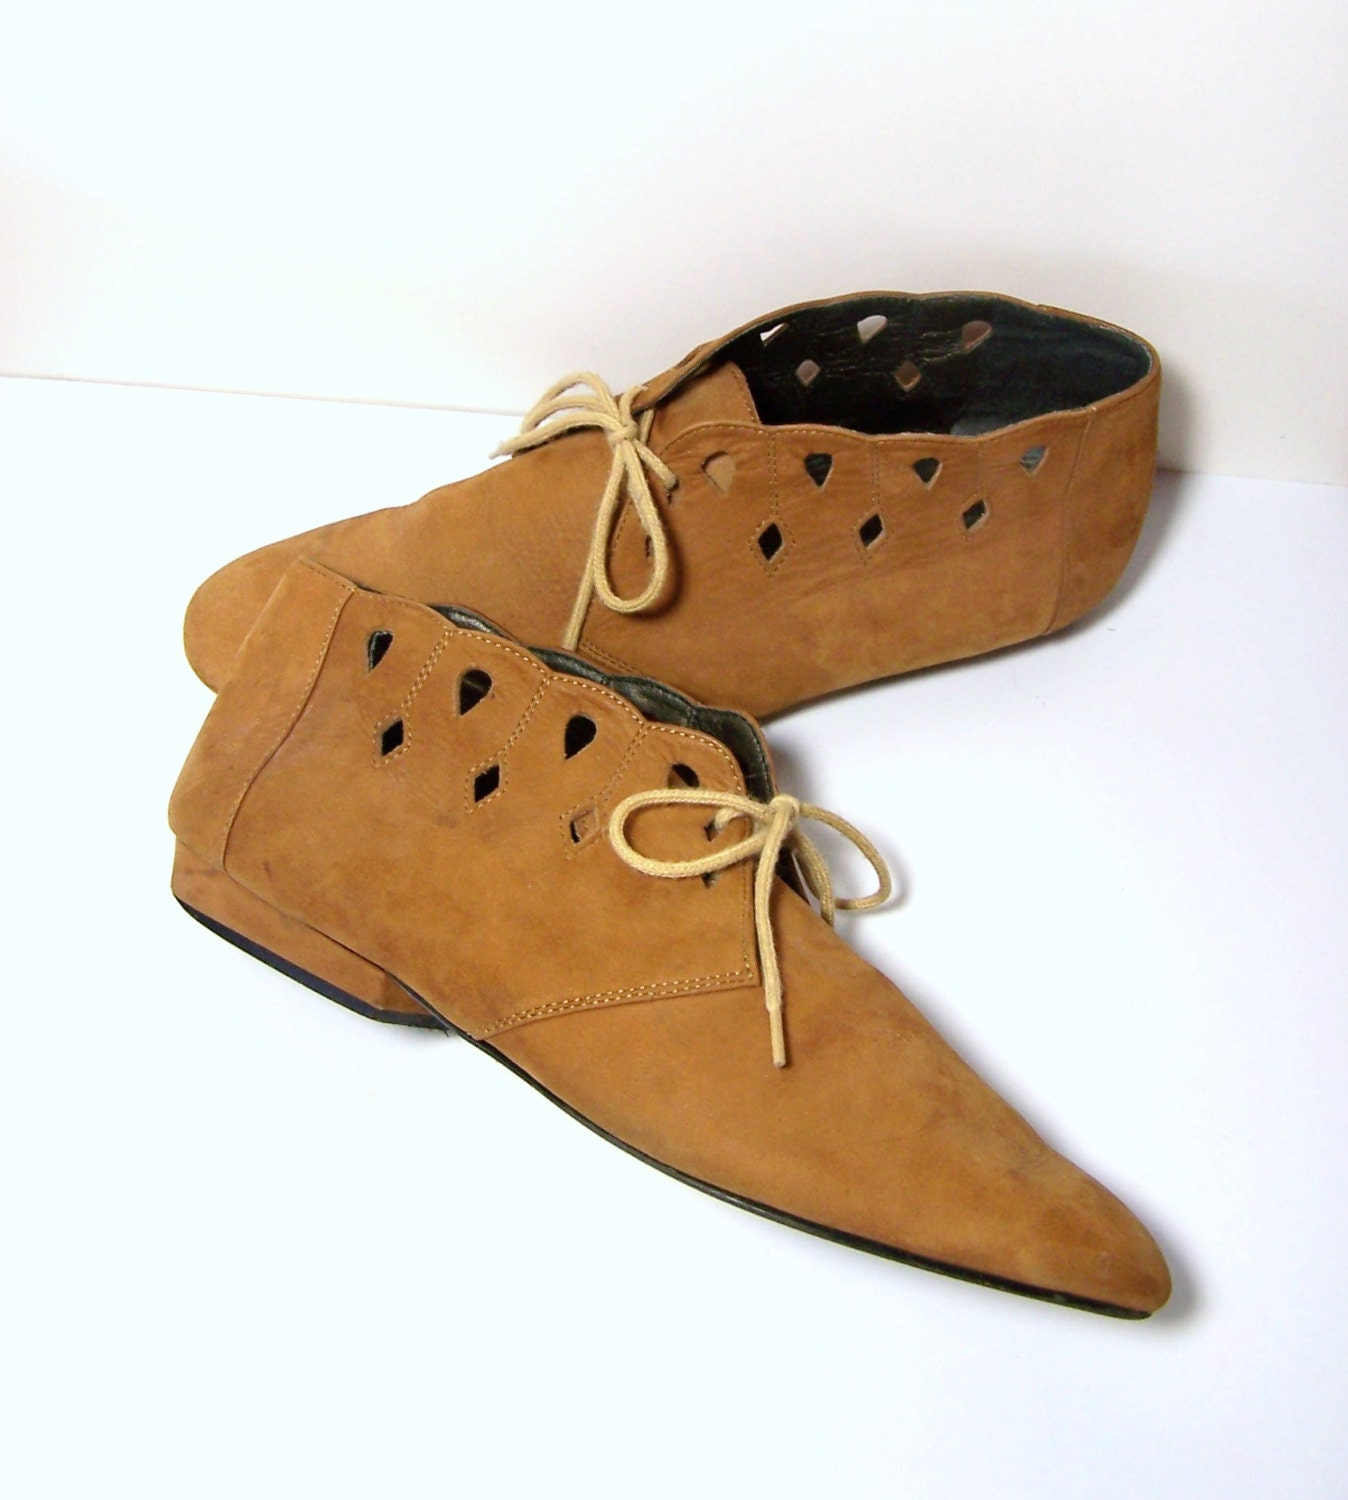 Brilliant Platform Shoes, Also A Fad In The 1970s, Date Back Hundreds Of Years, According To The Website Fashiontelegraphcouk Impractical High Heels, Known As Chopines, Were Worn By Upperclass Women In Italy And Spain During The Late